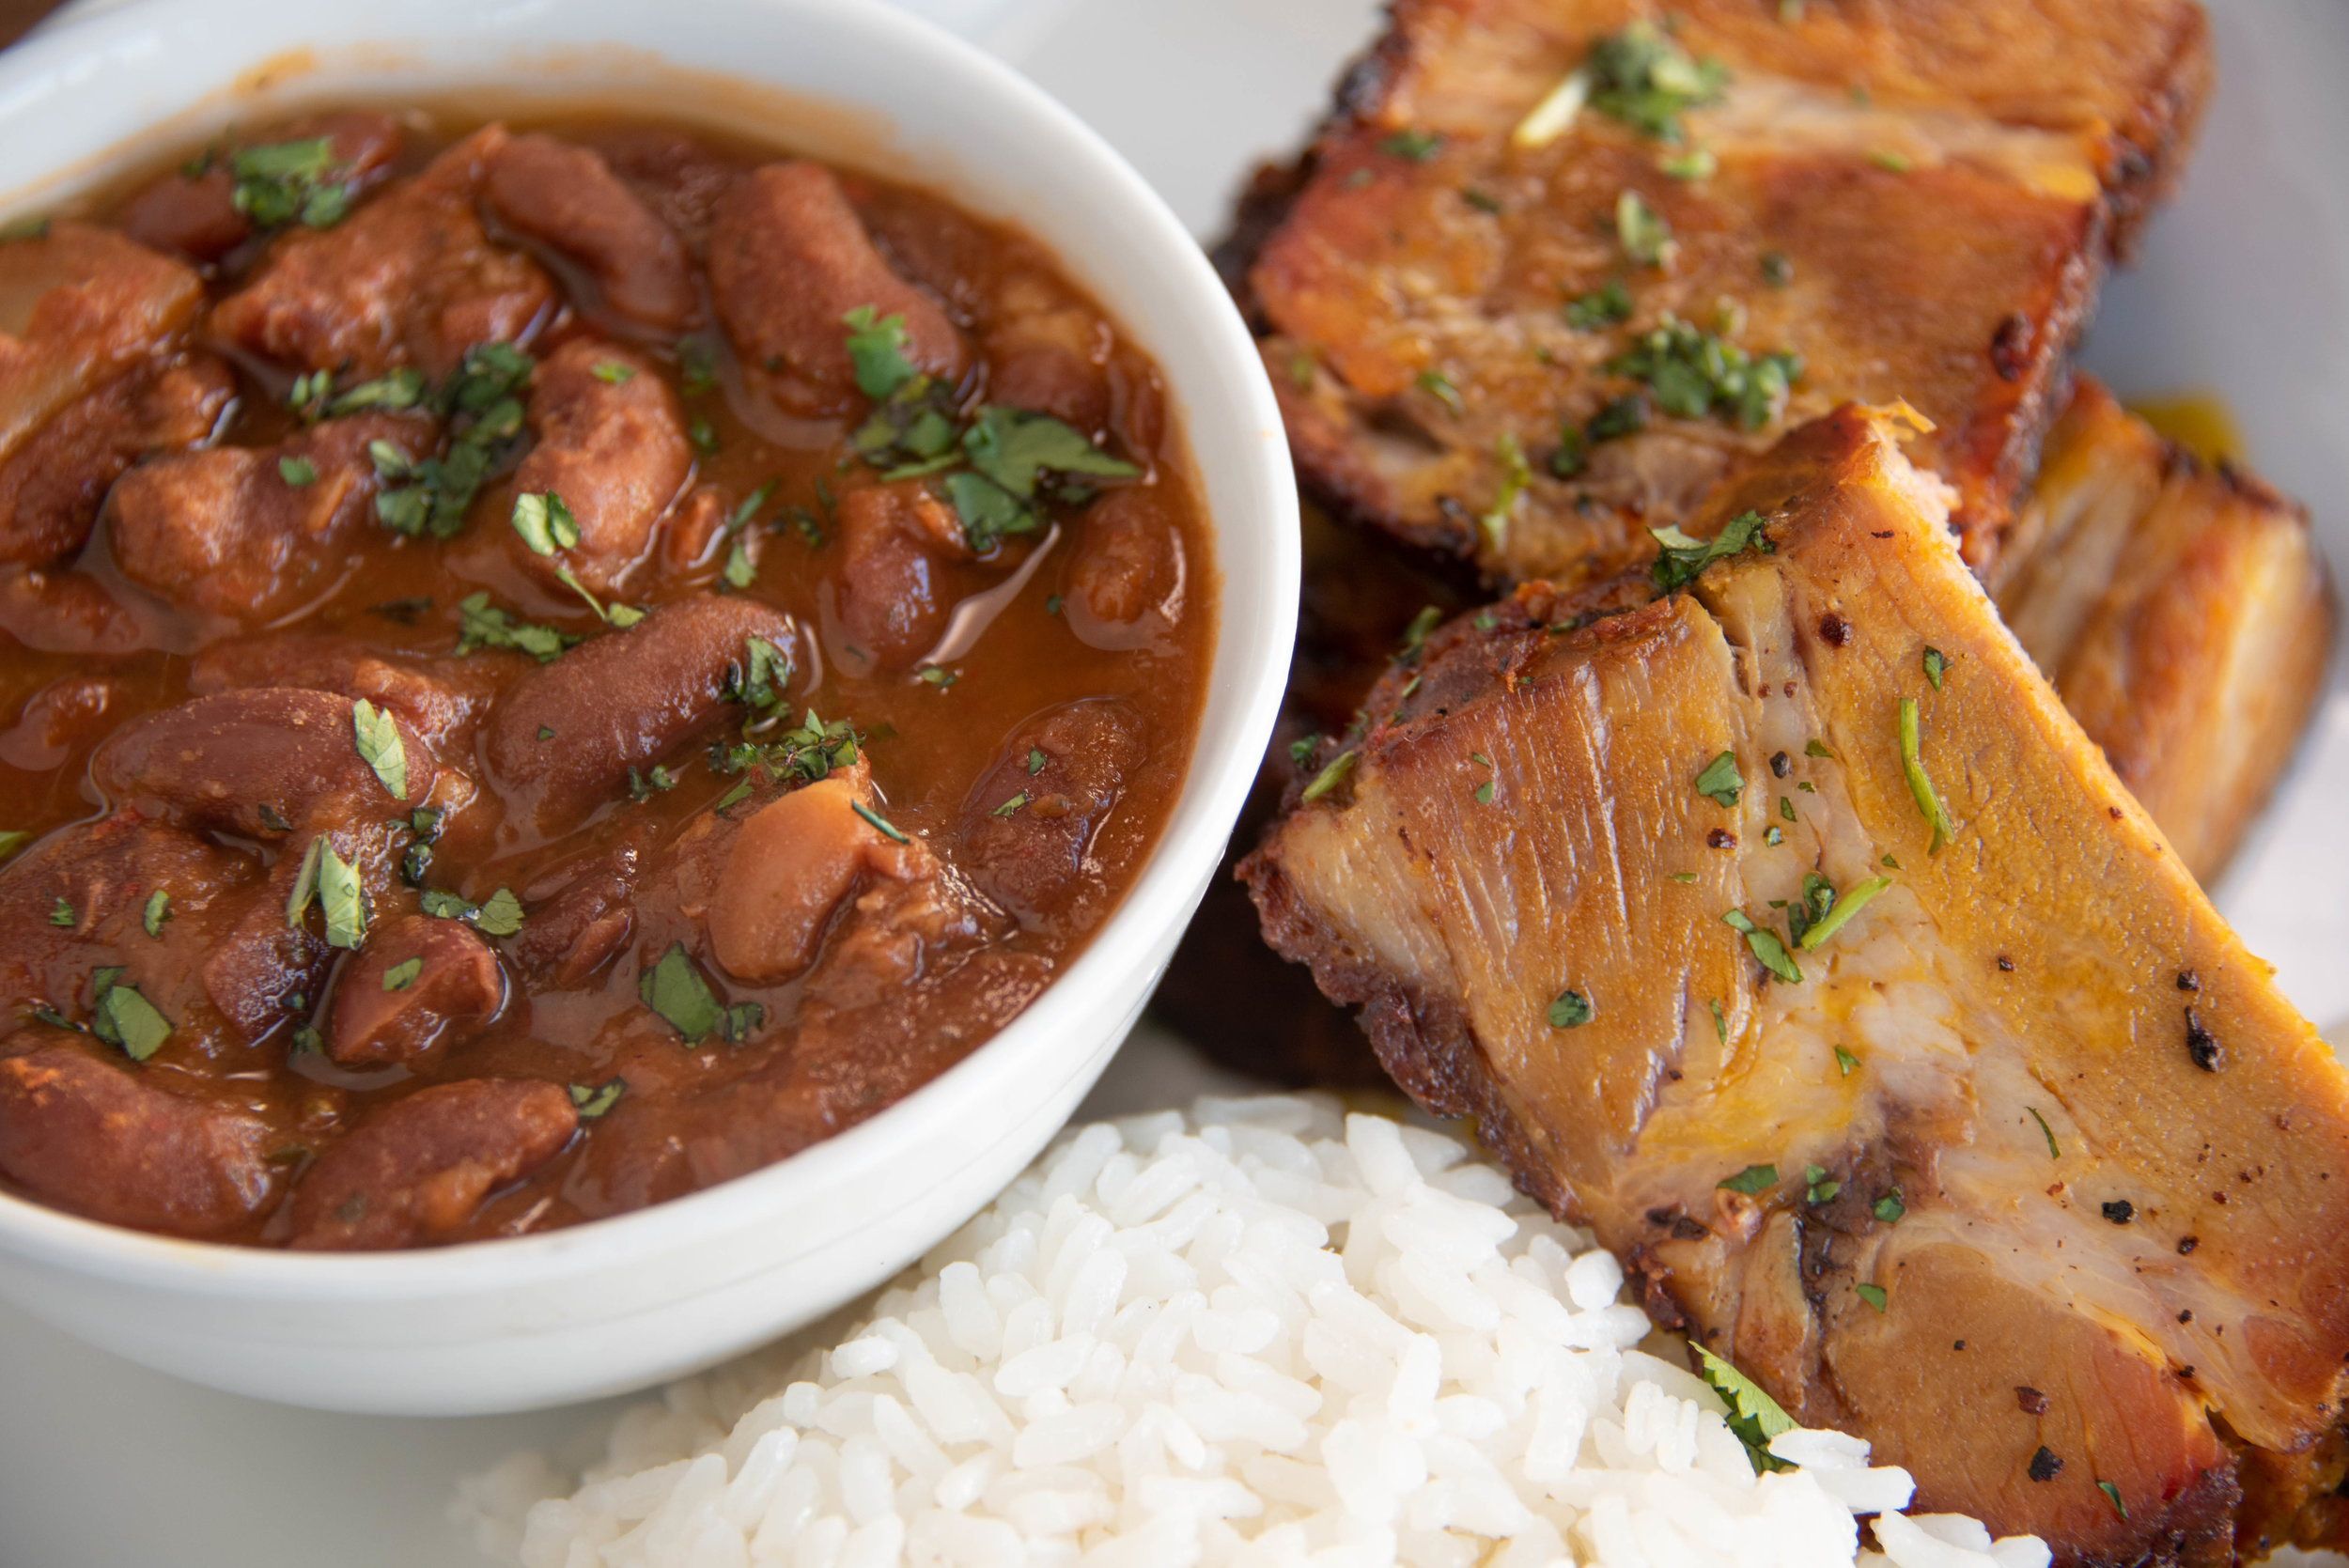 Flavorful slices of Pernil — Slow Roasted Pork Shoulder marinated with Spices, Garlic and Fresh Oregano— with Arroz Blanco and a warm bowl of Habichuelas